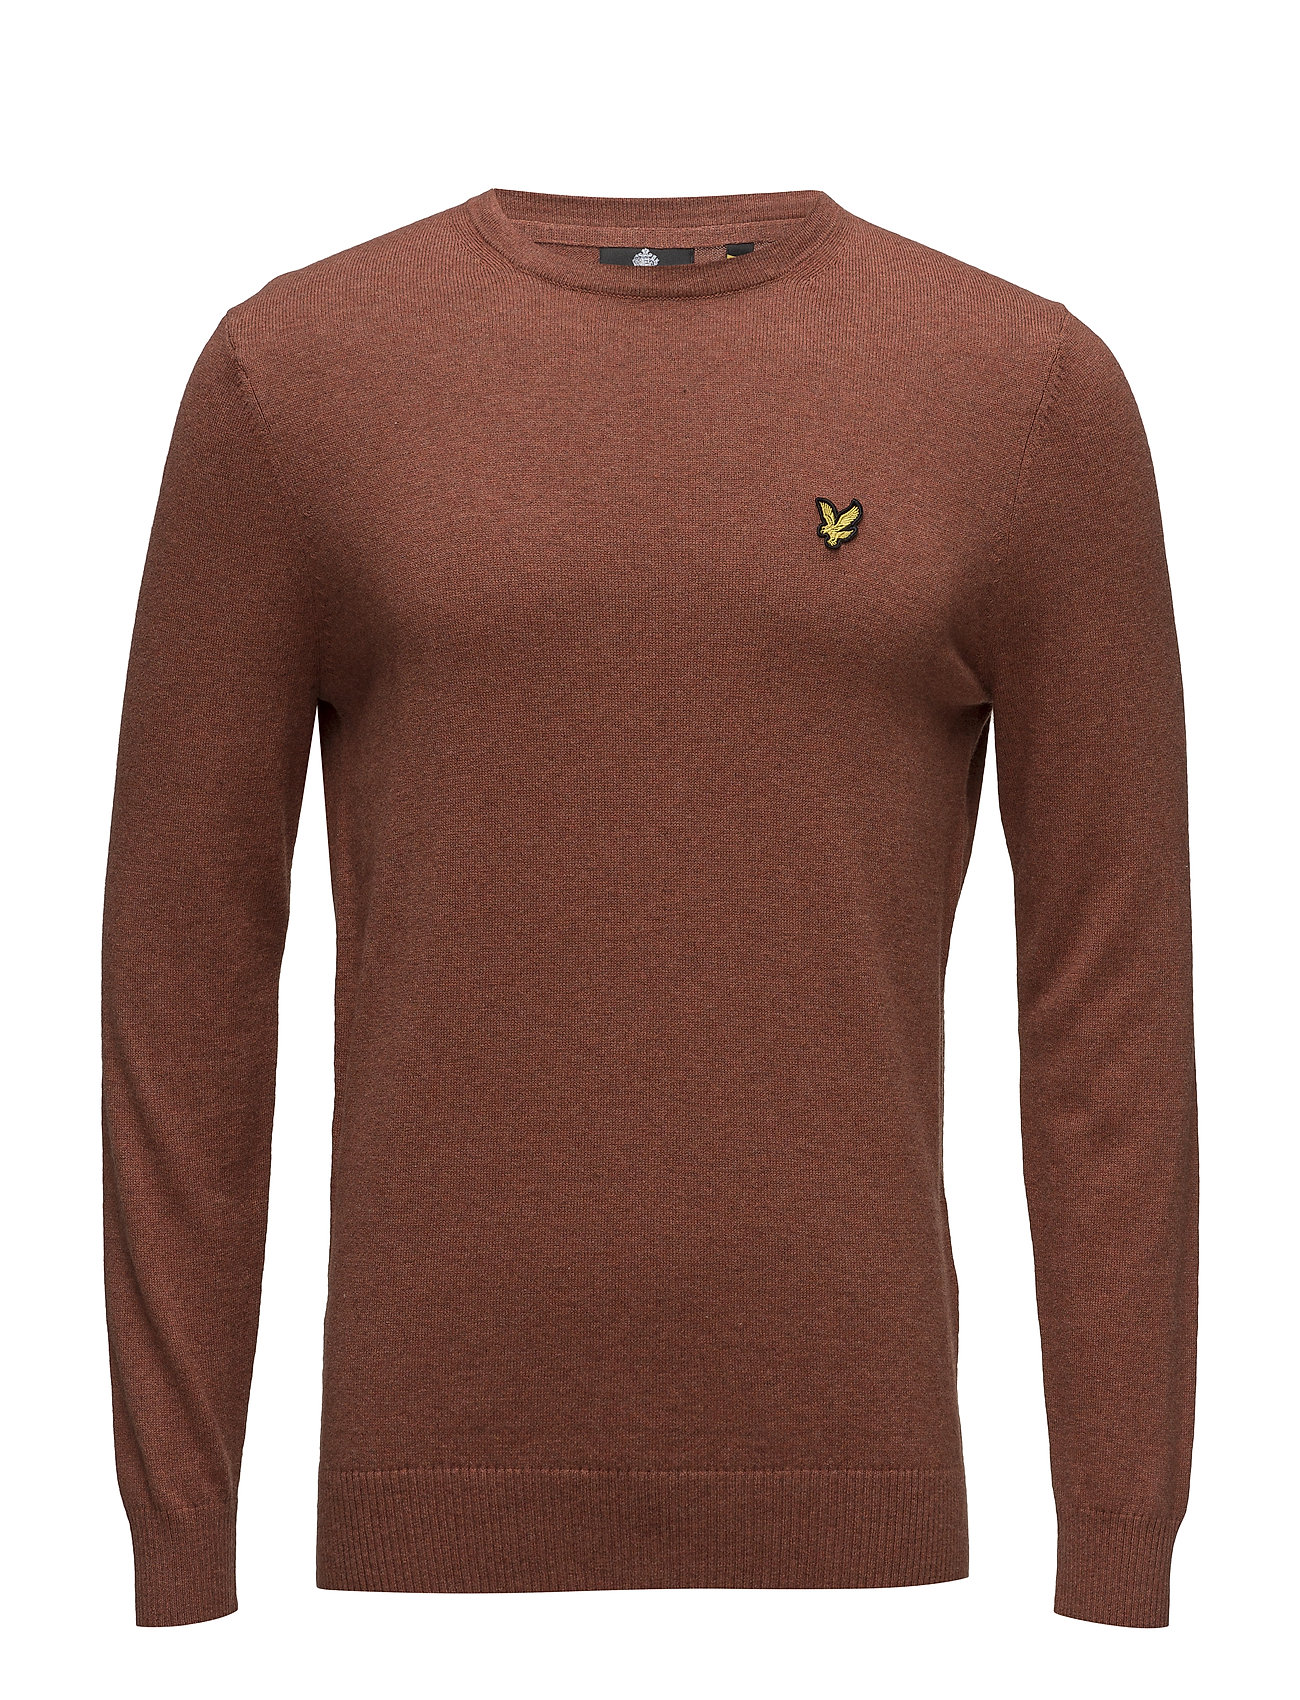 Lyle & Scott Cotton Merino Crew Jumper